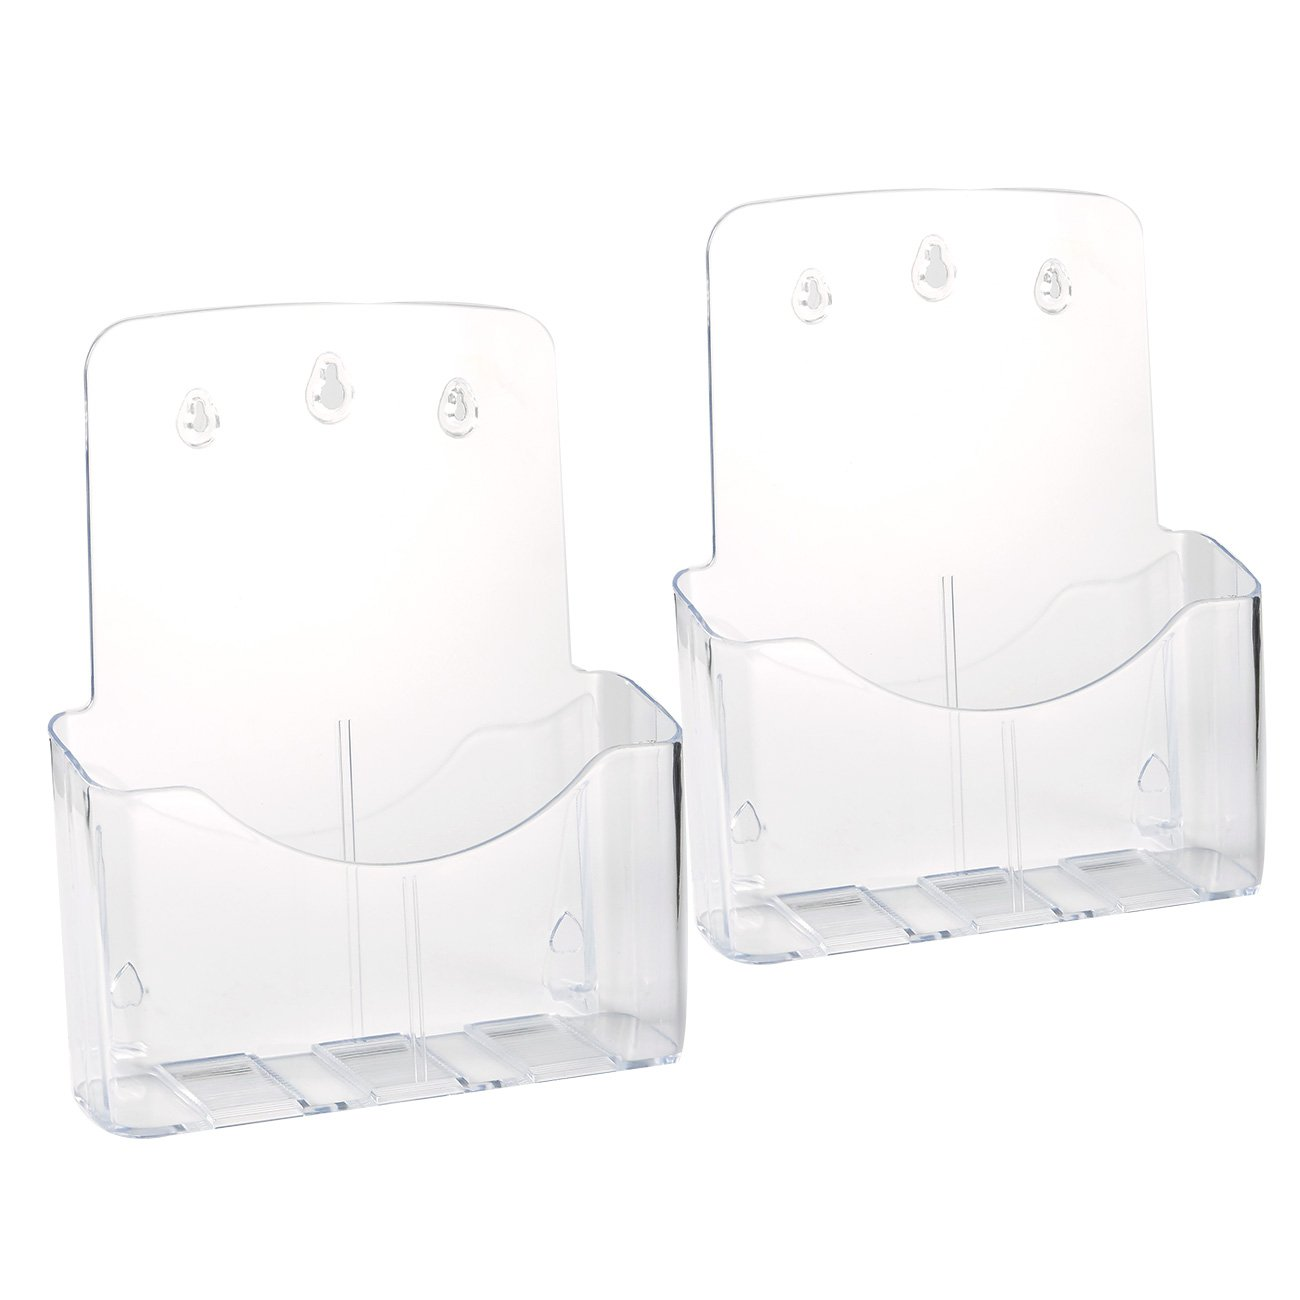 Acrylic Brochure Holder – 2 Pack Clear Full Page Pamphlet Holders for Flyers, Booklets, Notepads, Journals, Magazines, and Maps, Clear, 9.3 x 10.5 x 4 inches